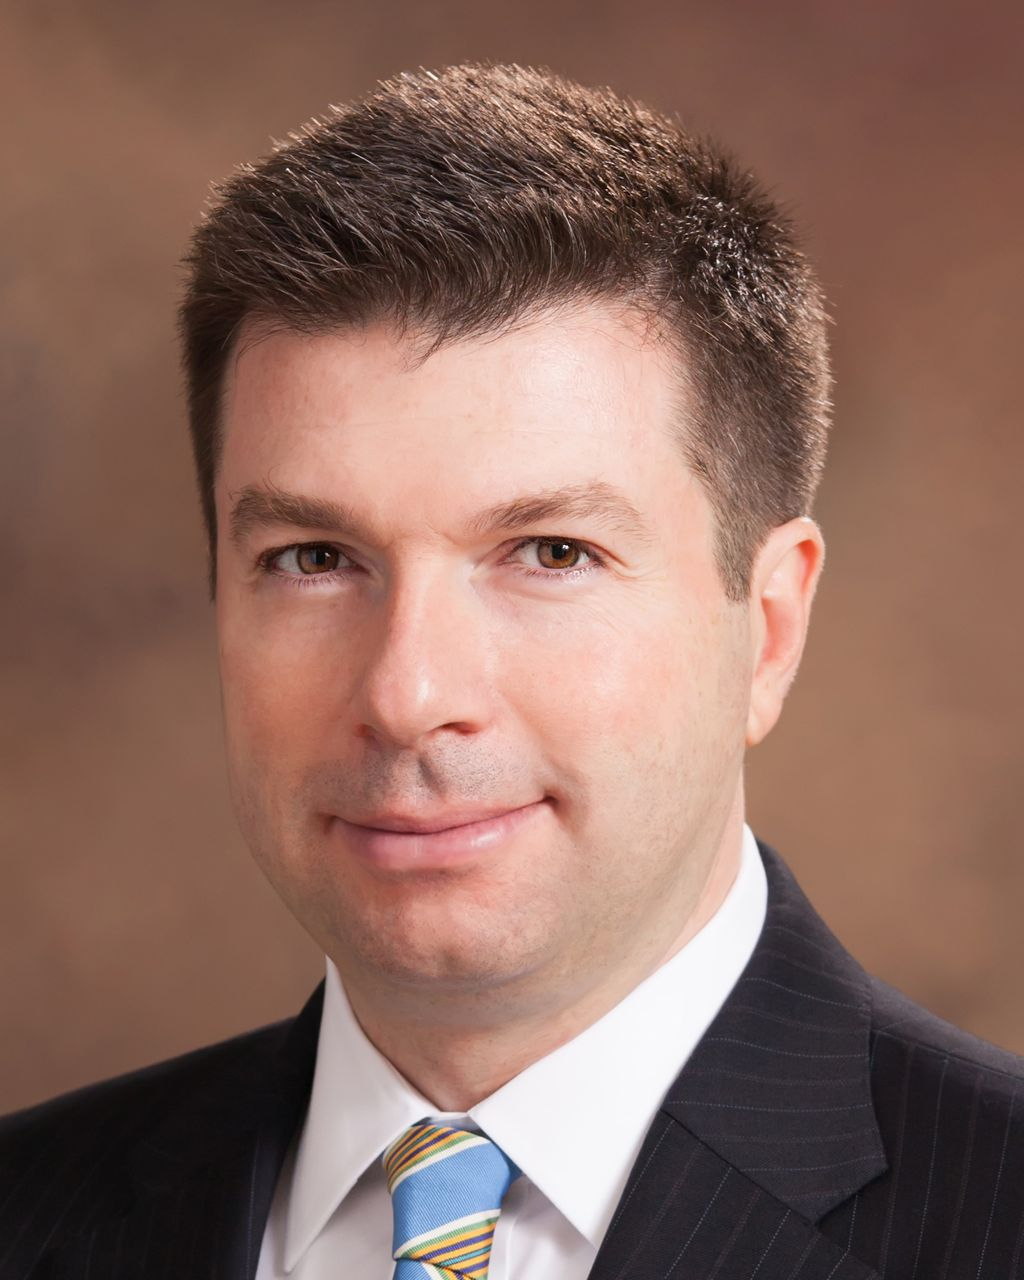 Patrick Cote, financial advisor Westwood MA